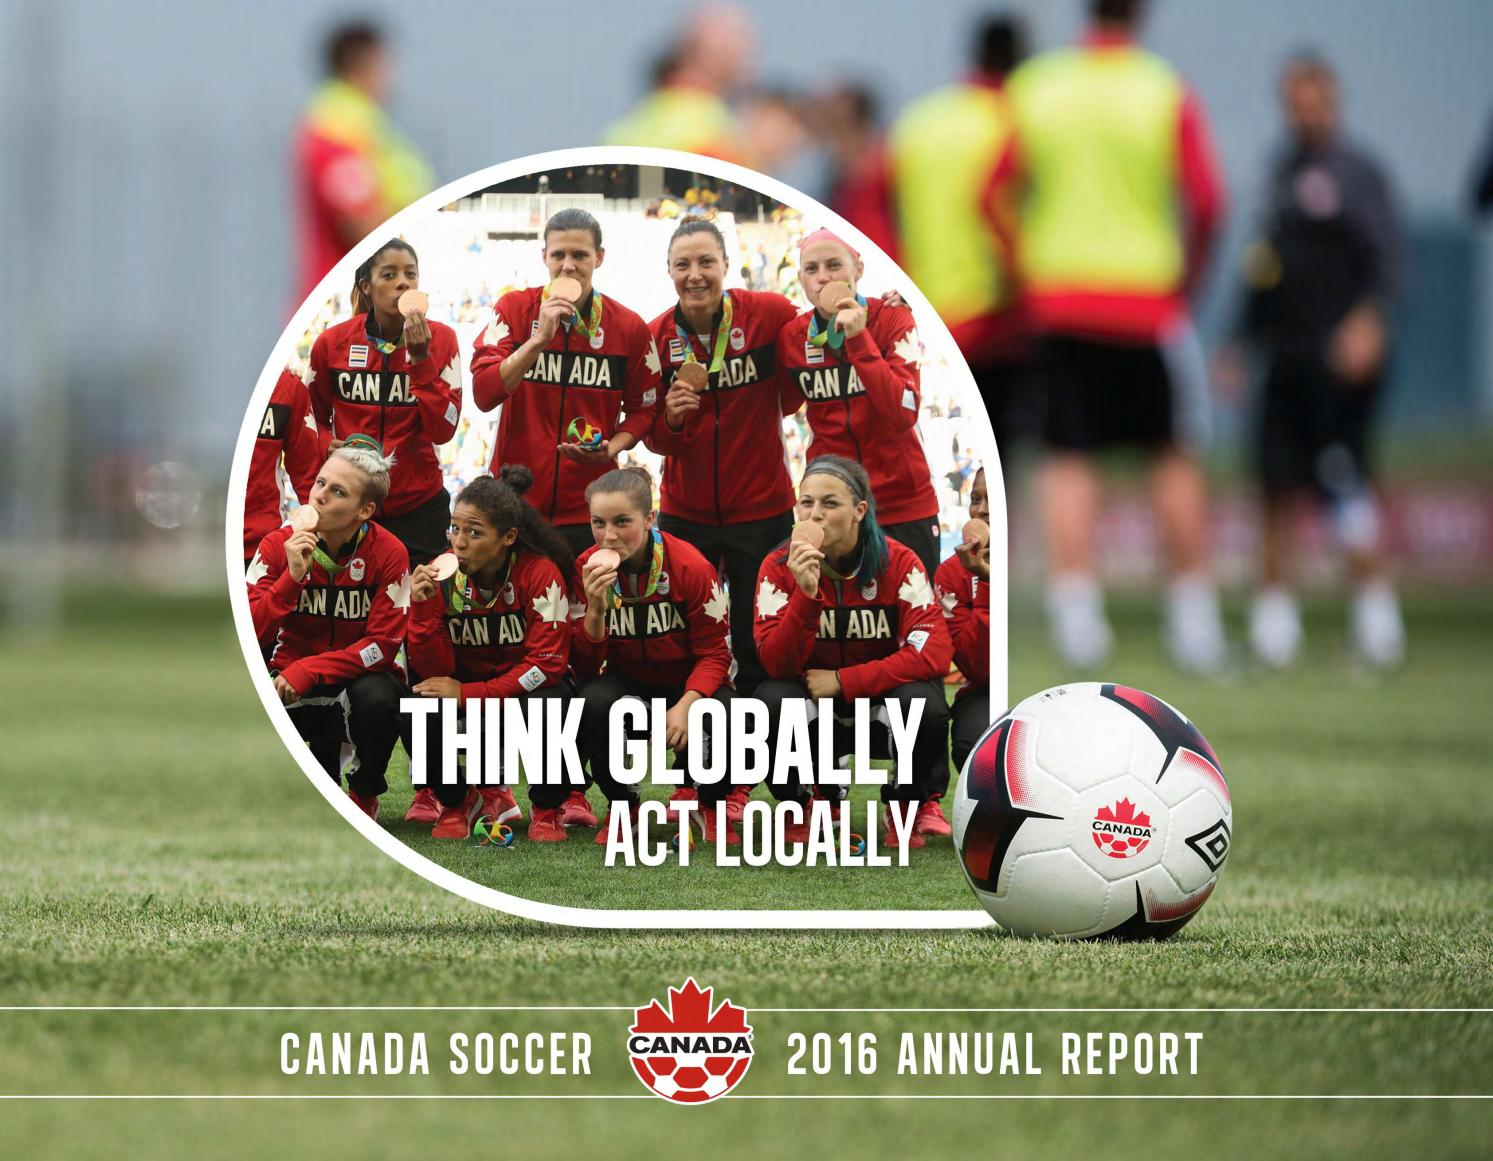 canada soccer 2016 annual report by canada soccer issuu